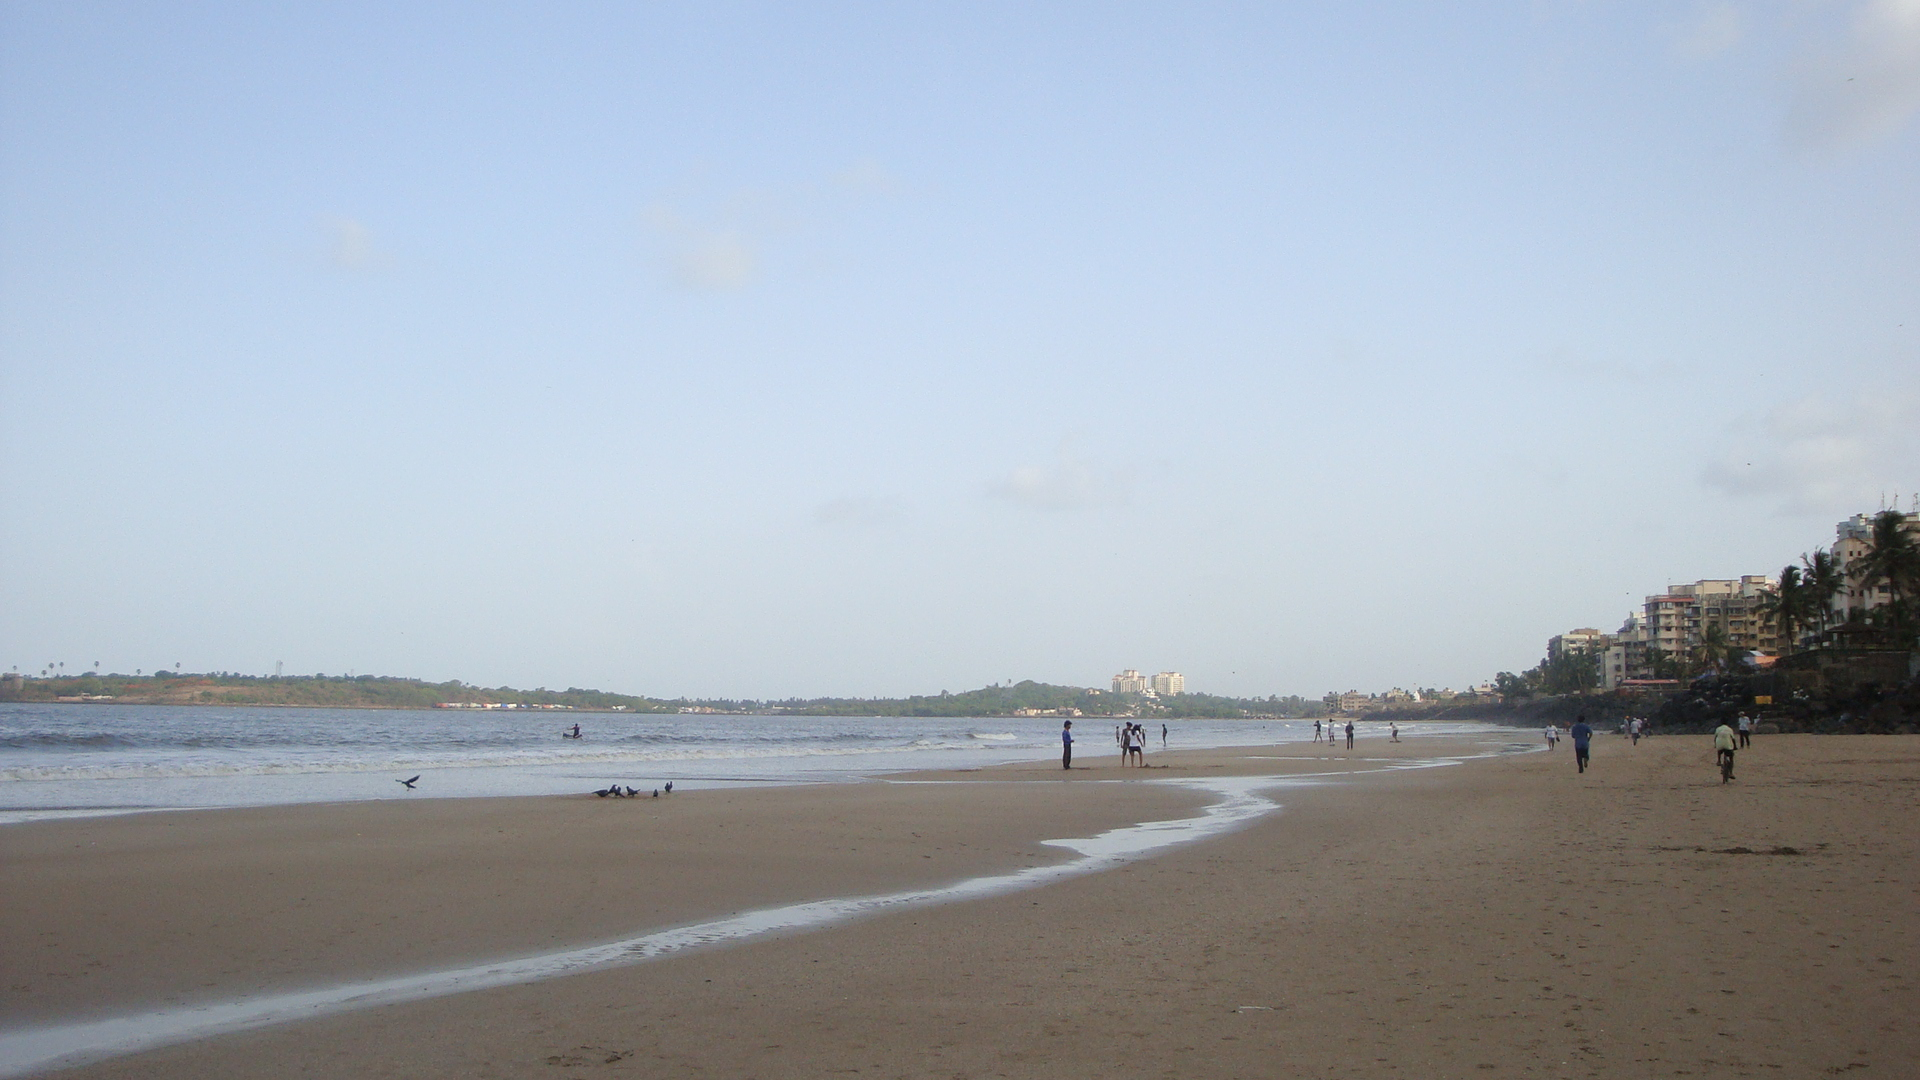 Beach in Muumbai